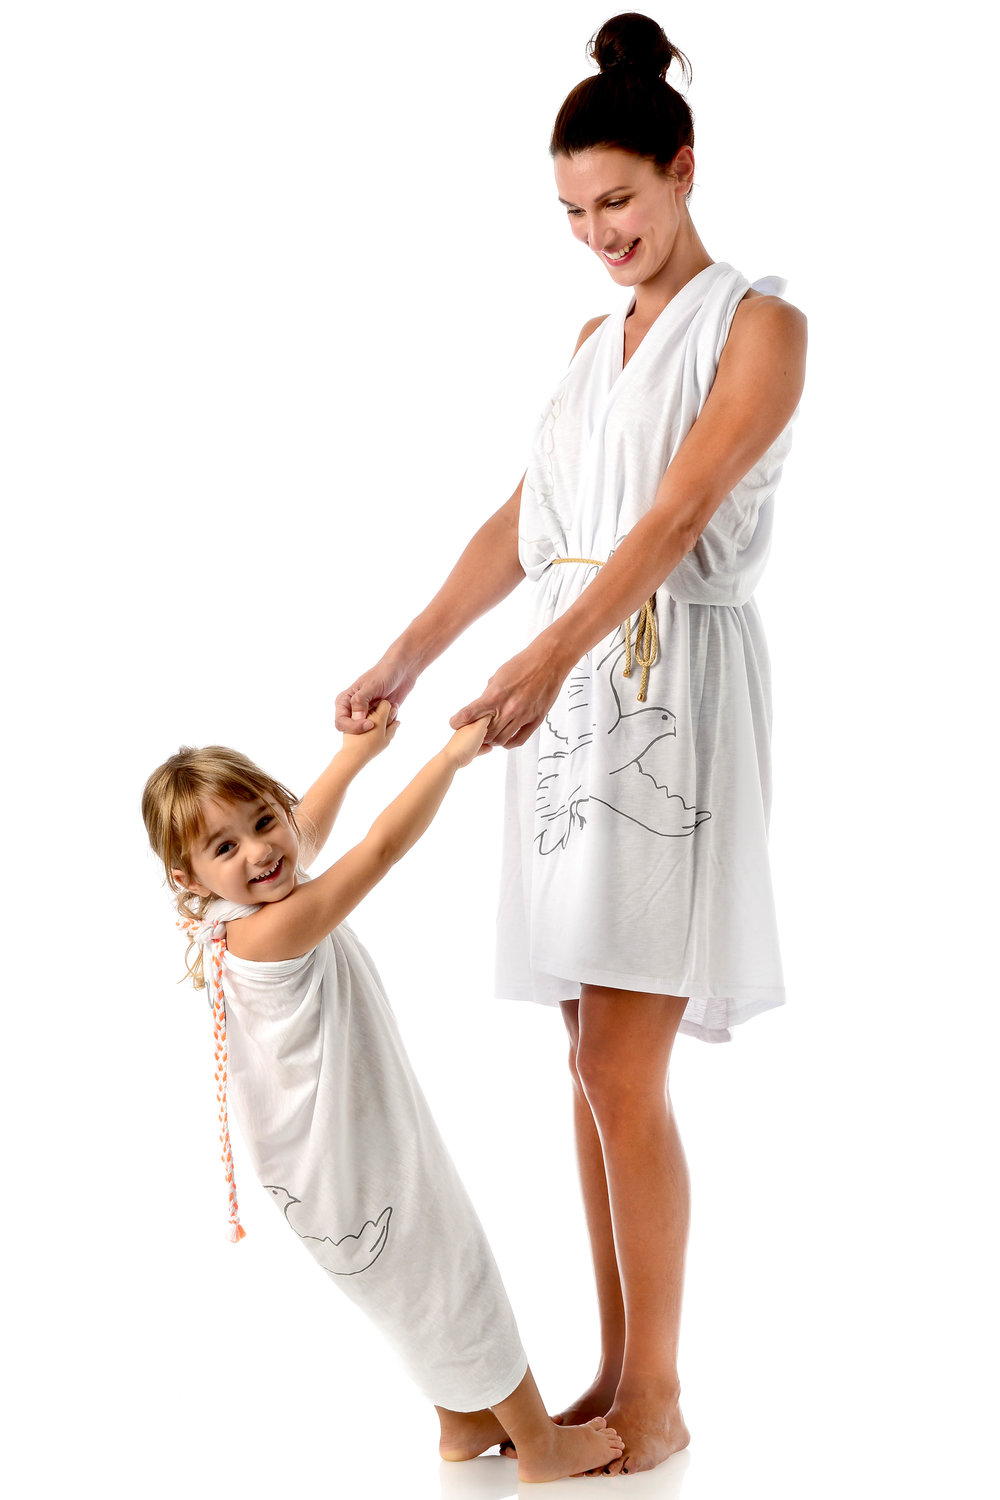 doves-on-white-matching-style-mother-daughter.jpg